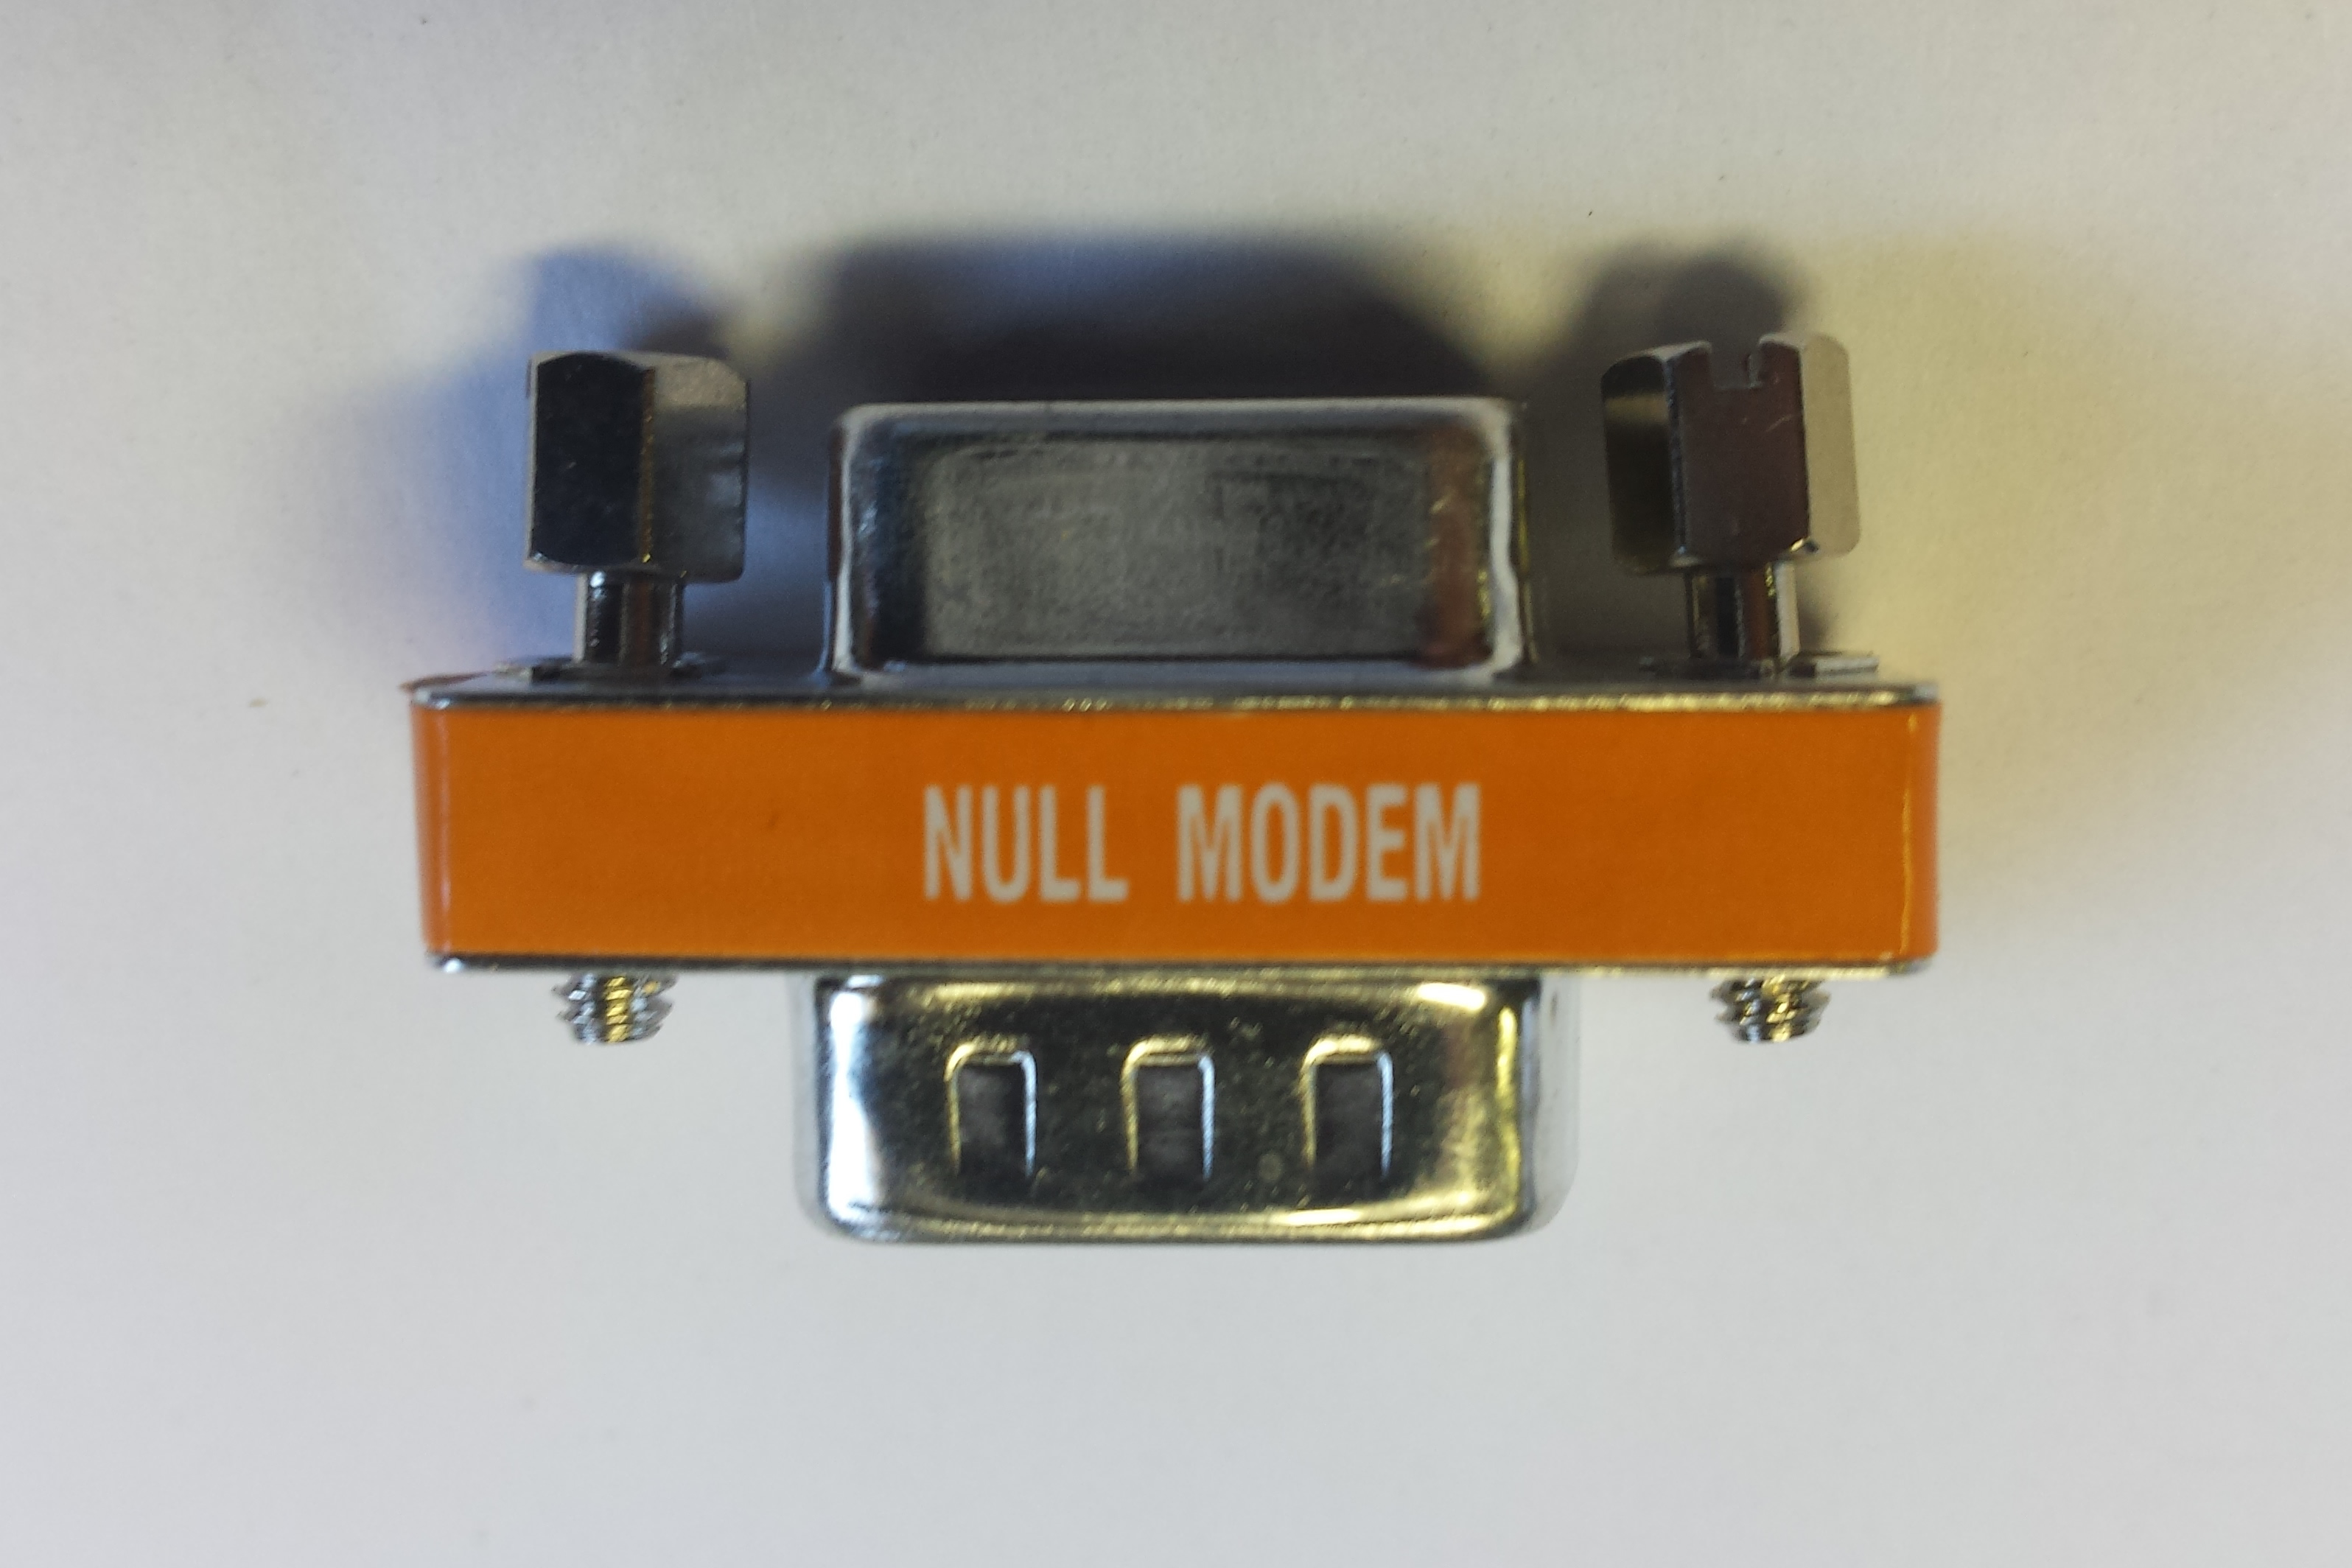 DB9 male to female Null modem mini gender changer